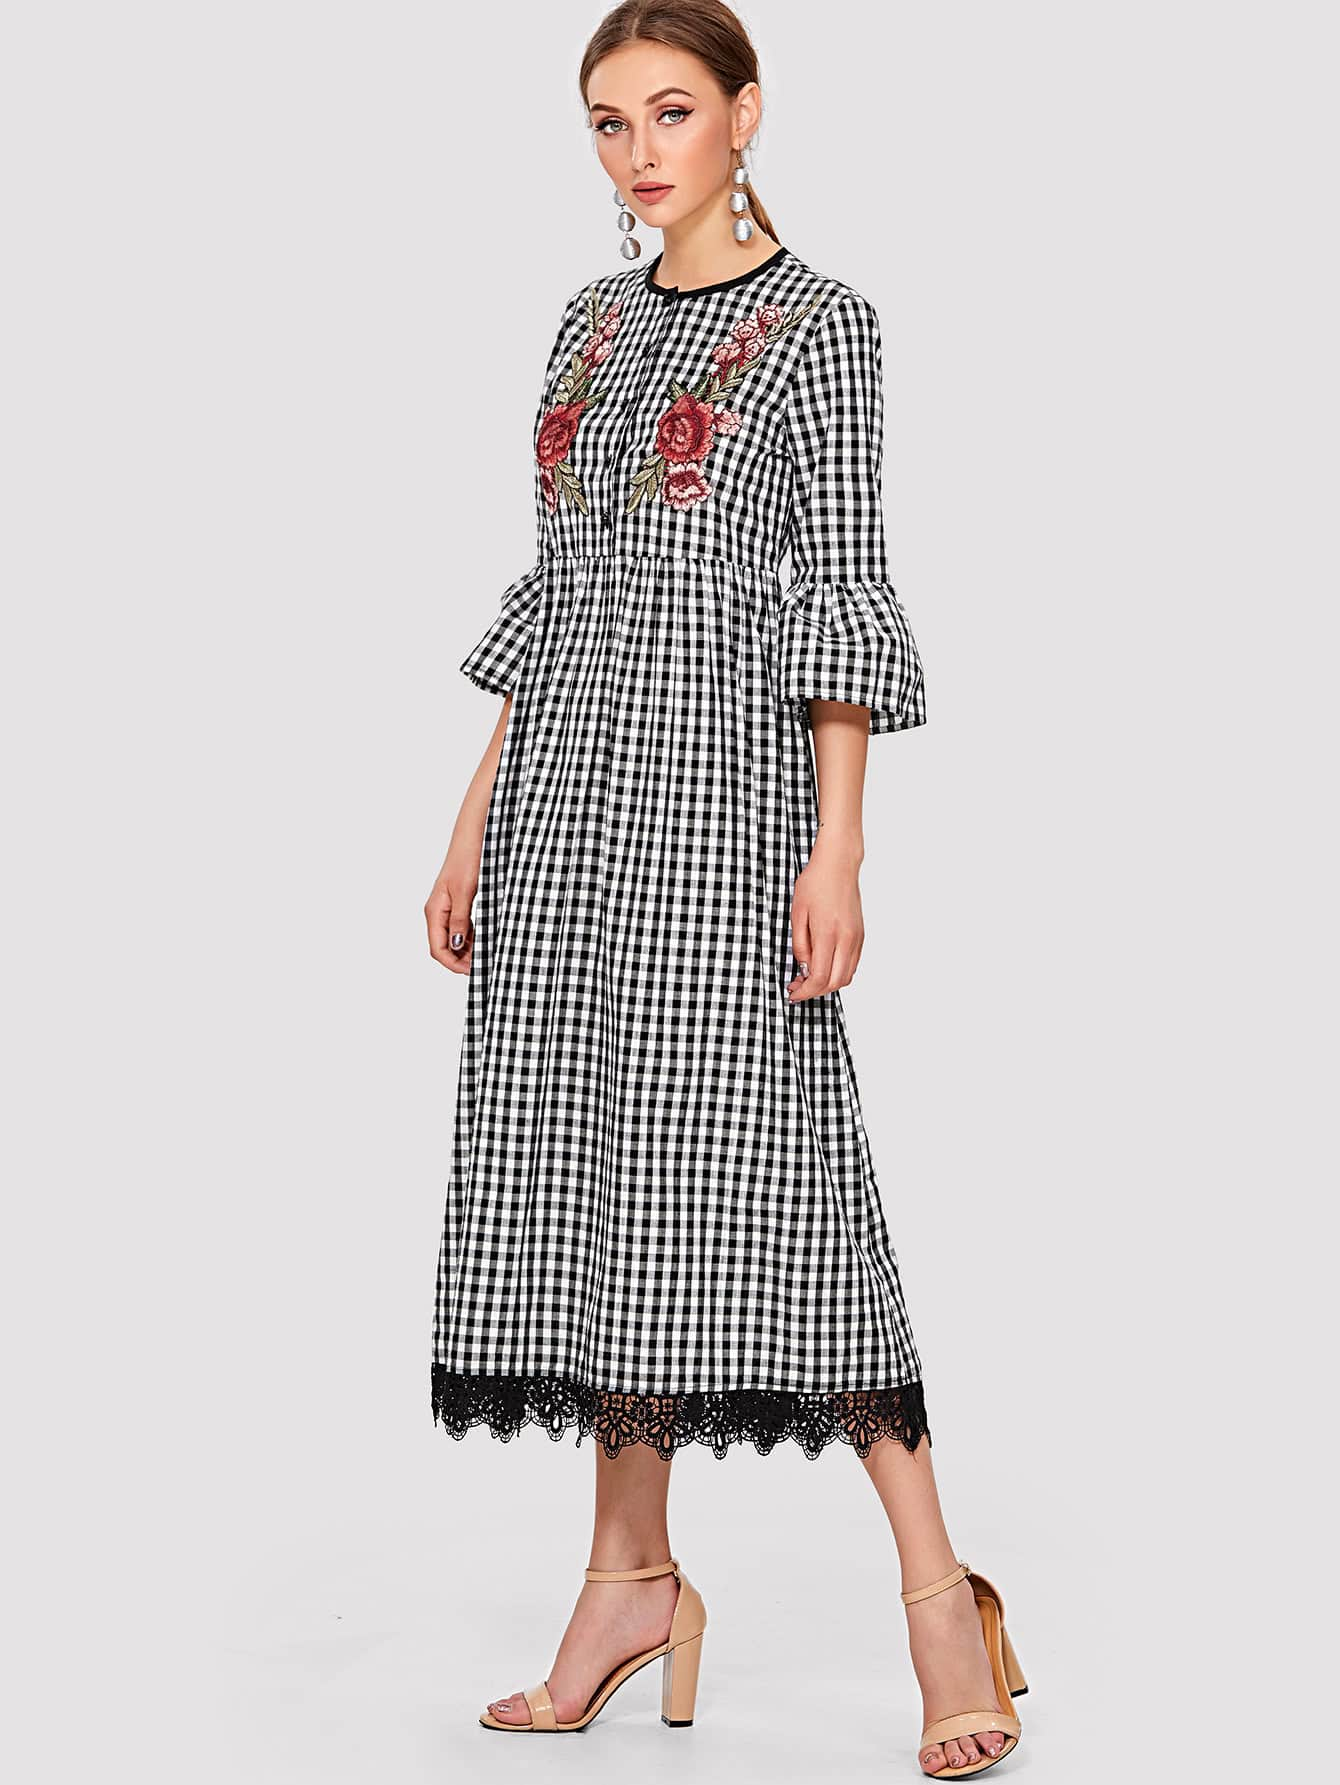 Embroidery Applique Lace Hem Gingham Dress embroidery applique knot back fitted